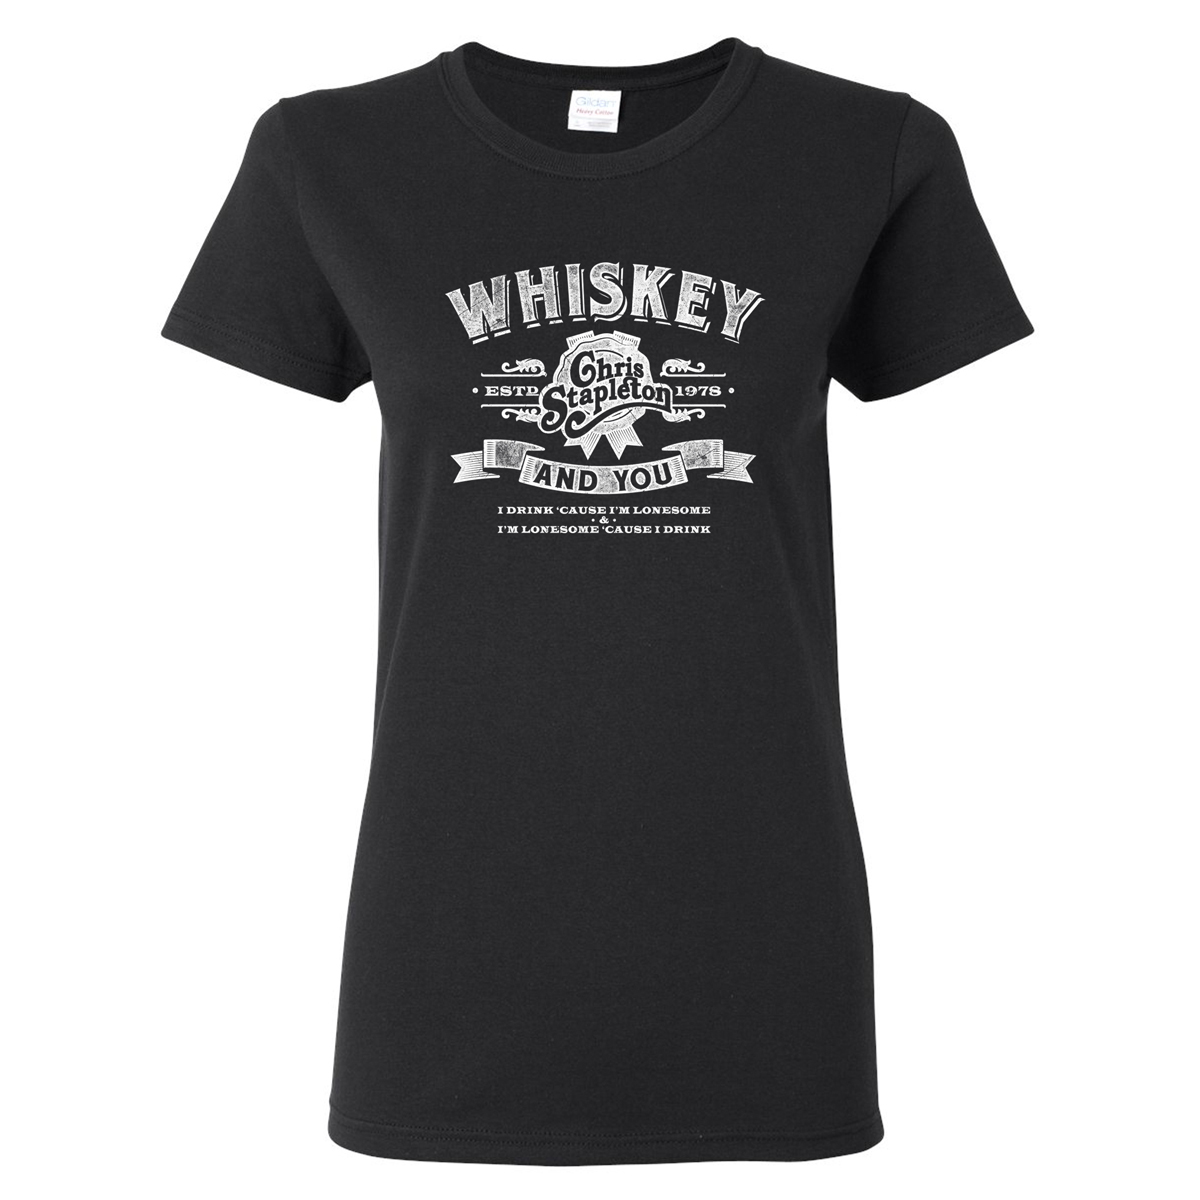 The Whiskey & You Ladies T